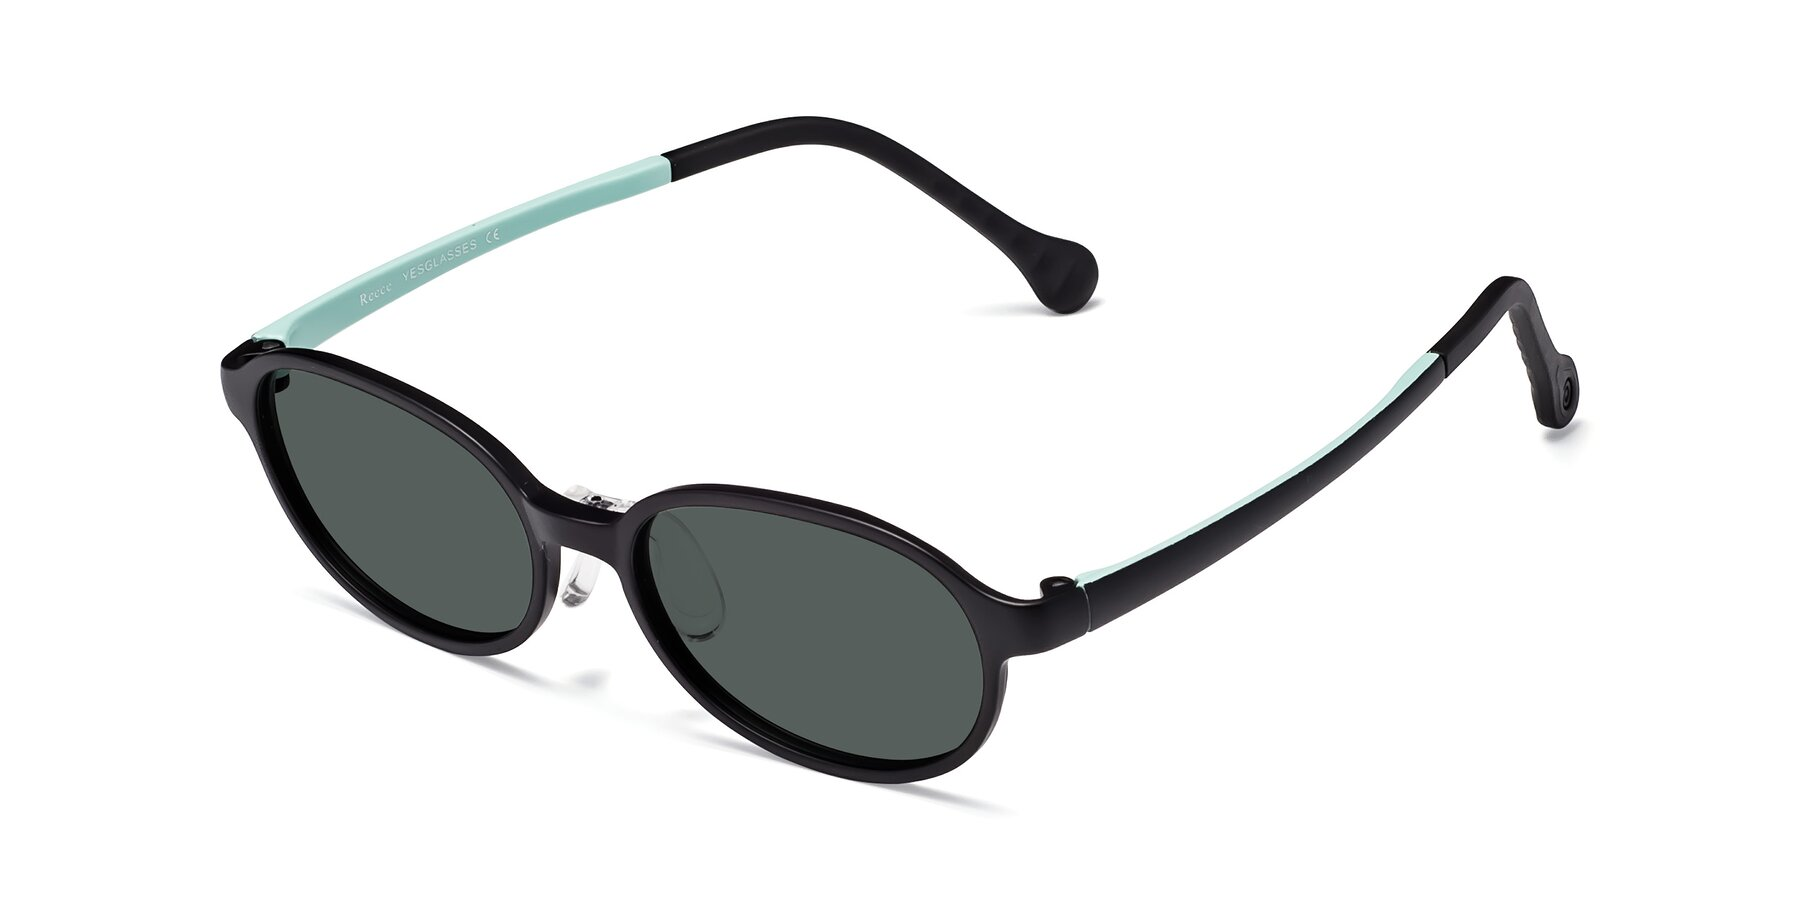 Angle of Reece in Black-Teal with Gray Polarized Lenses